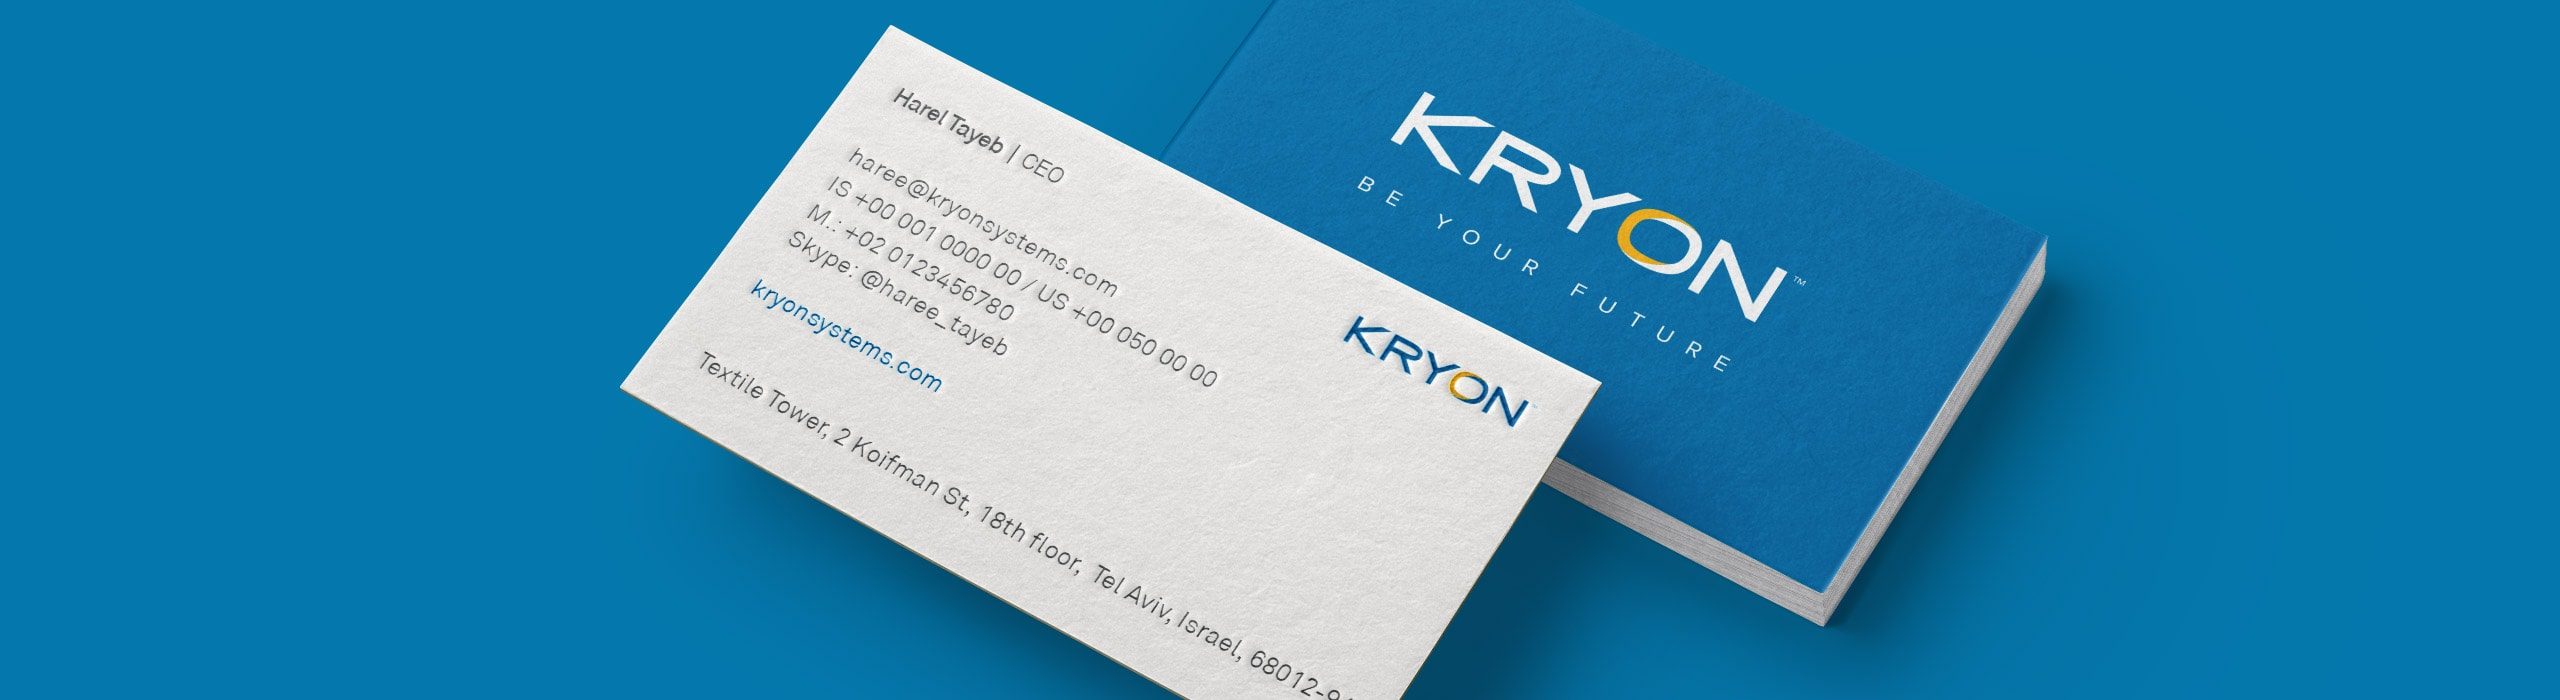 Kryon - 5 - Natie Branding Agency